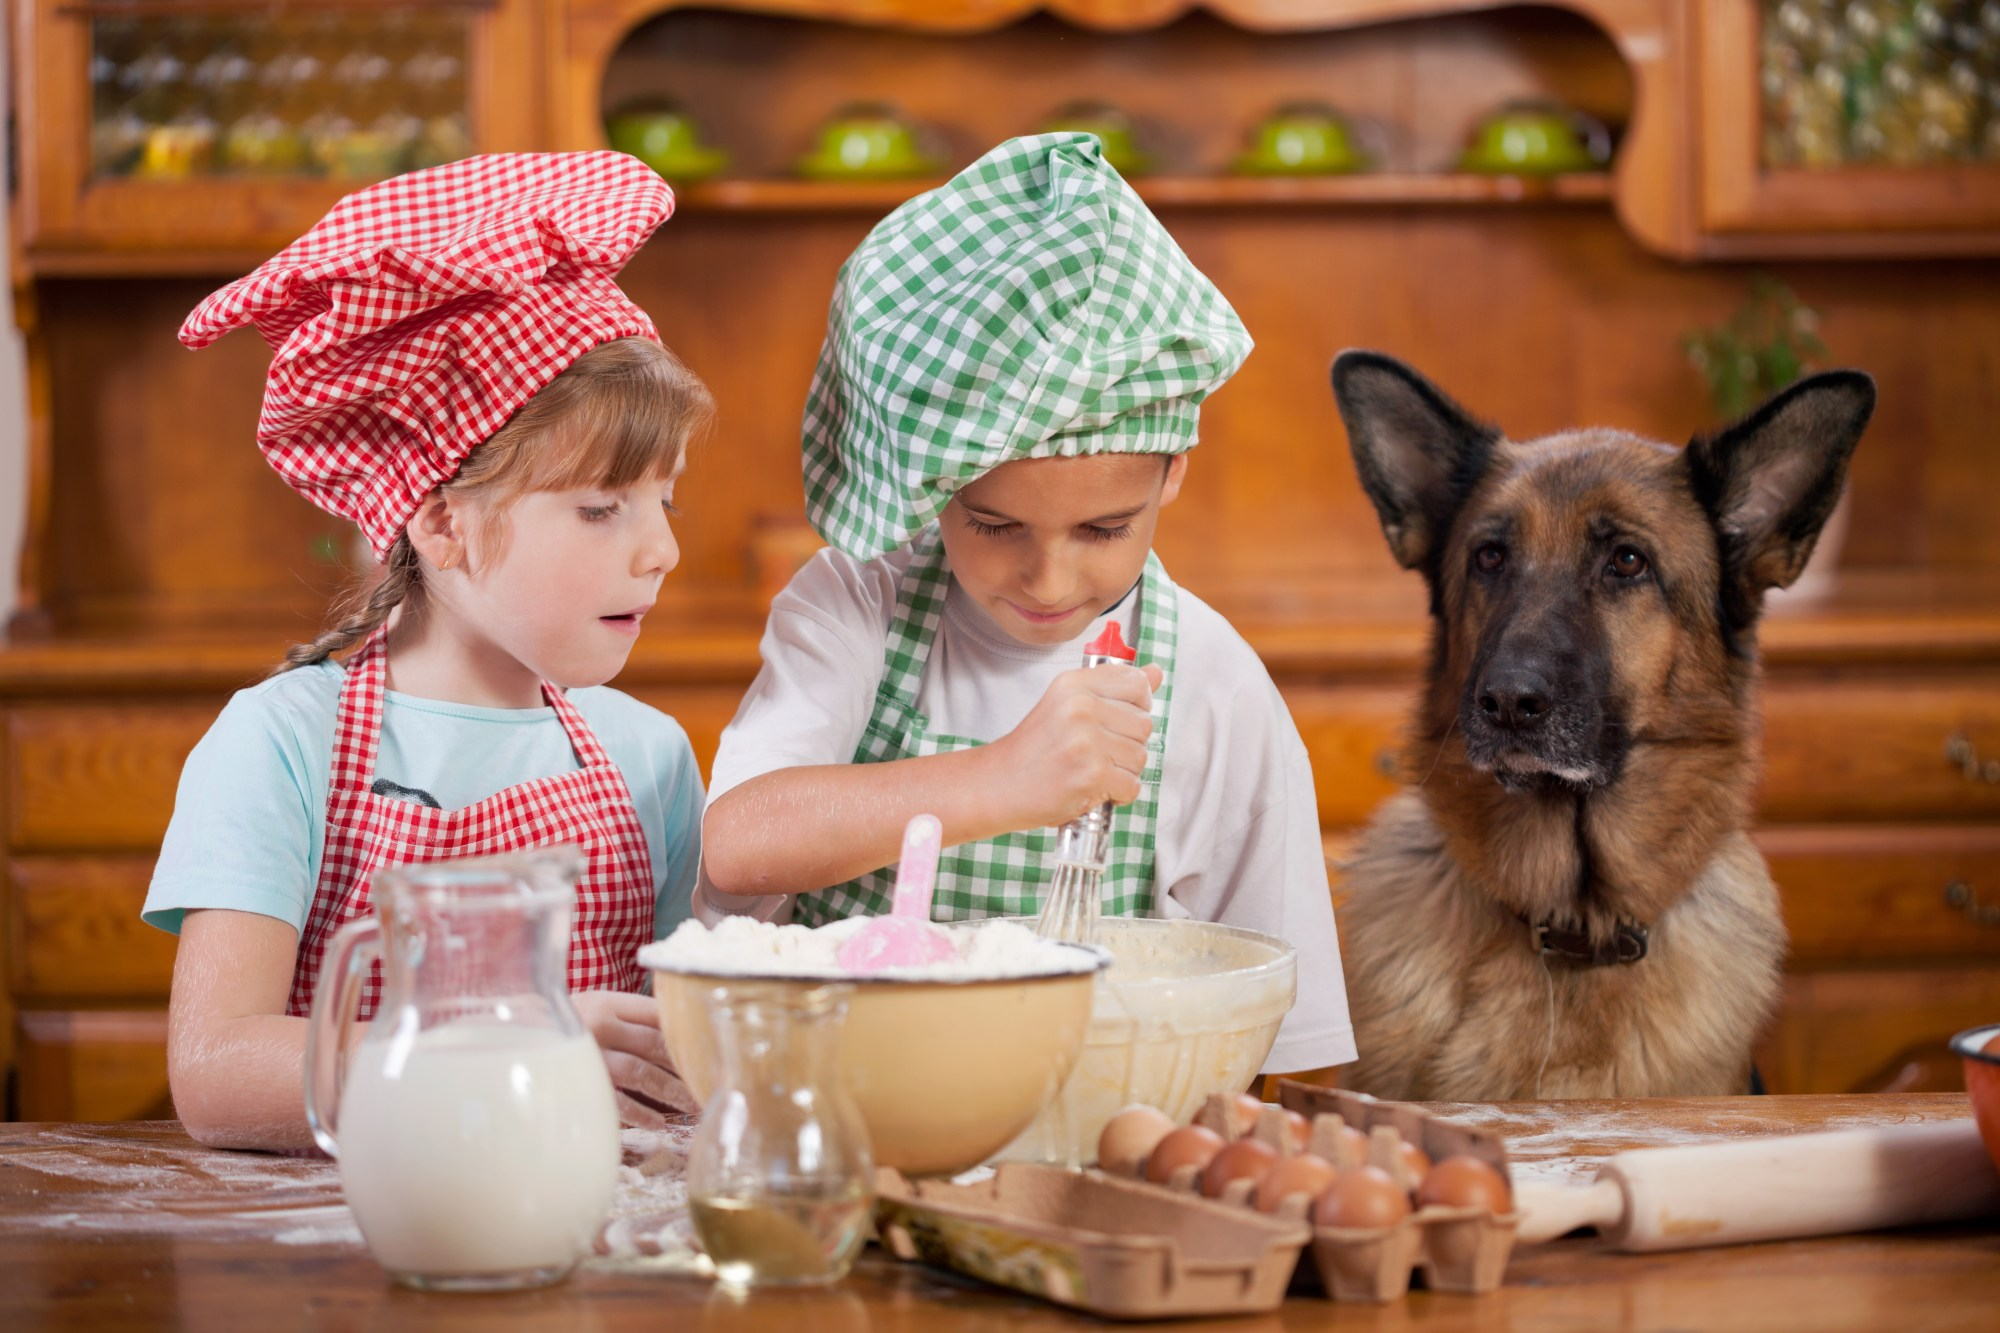 Two young girls, about 5 or 6 years old, are in the kitchen baking. Beside them, sitting quietly and watching on is an adult german shepherd.